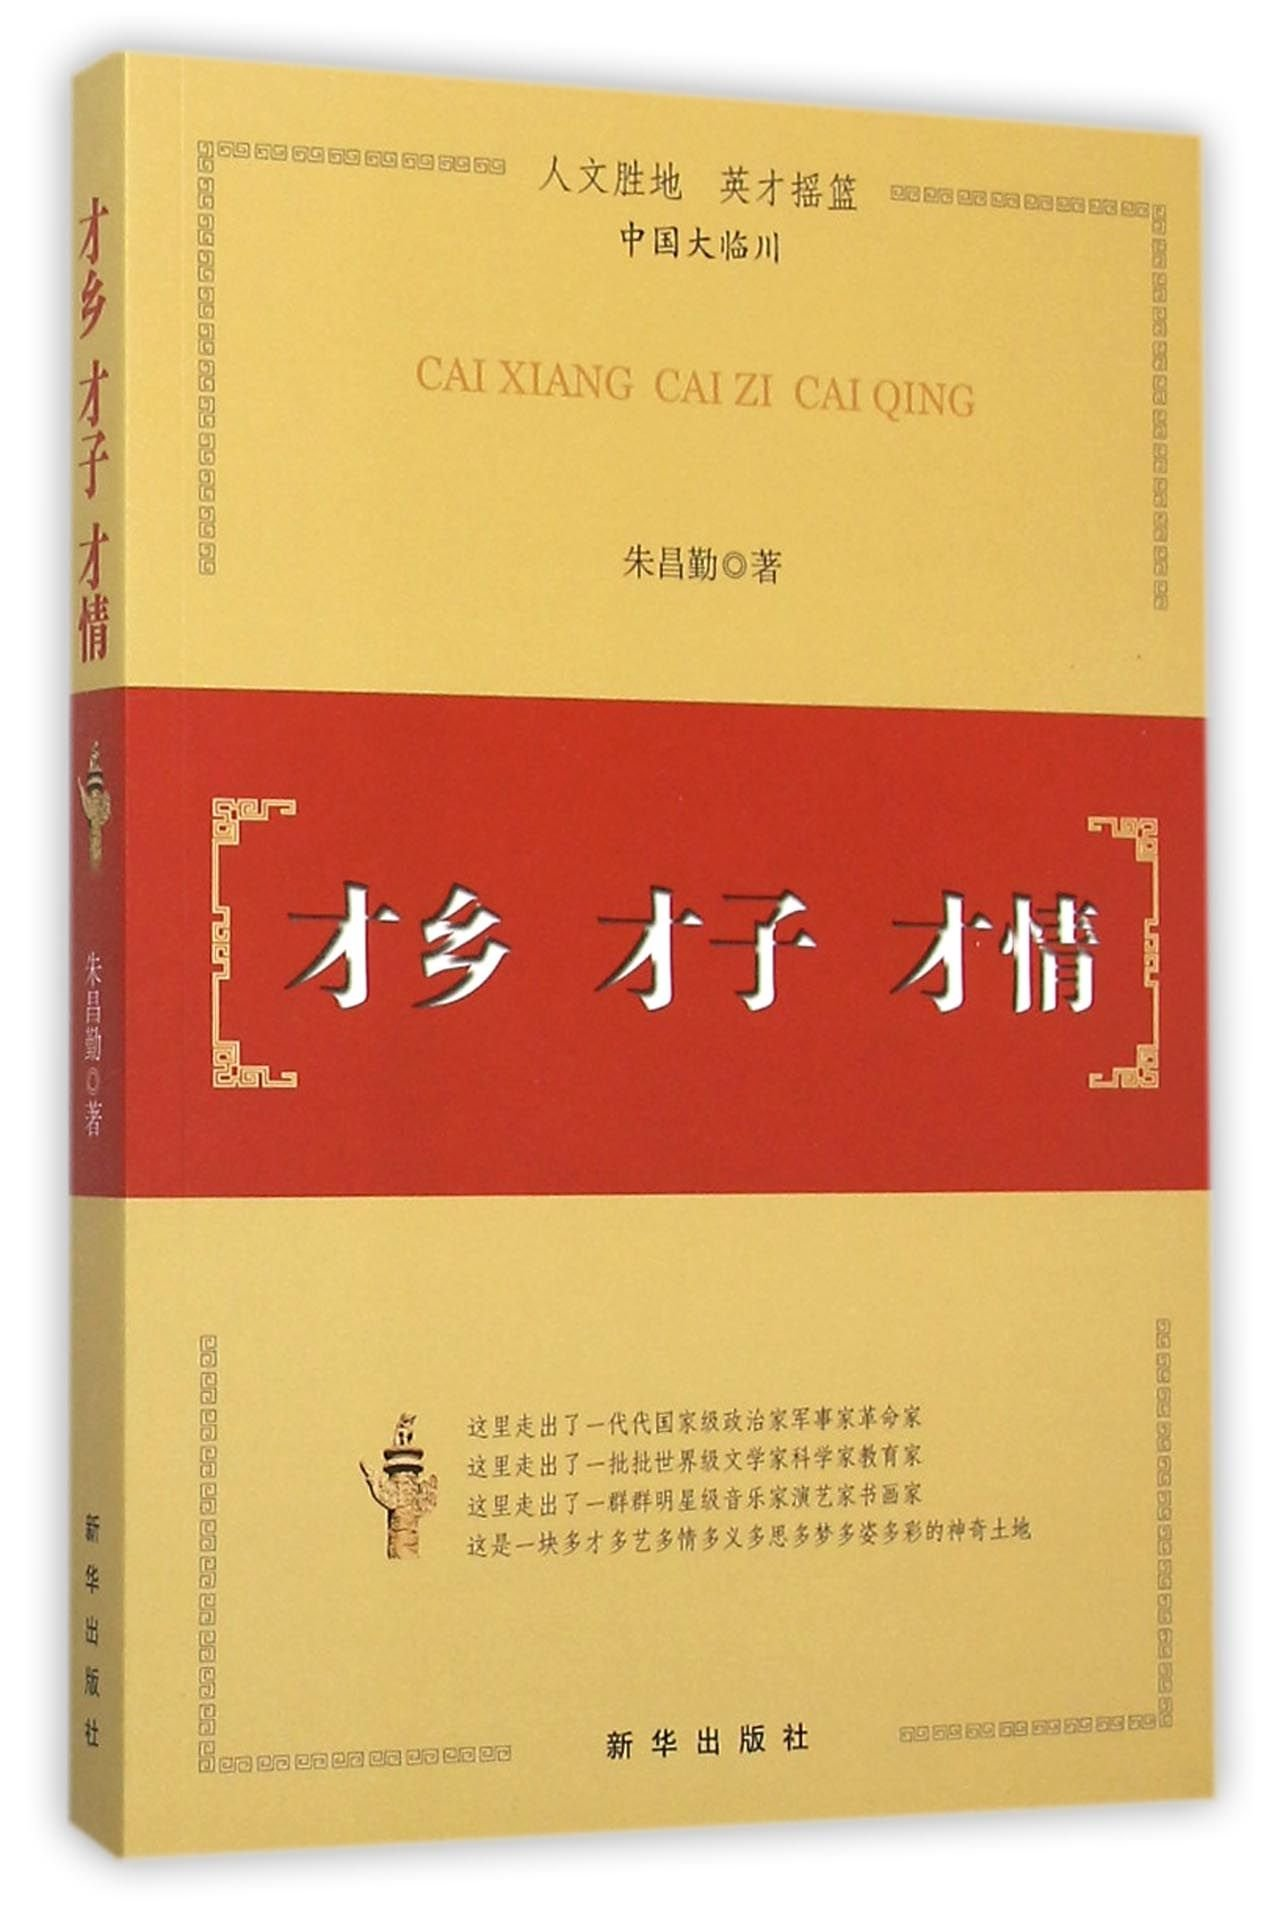 Adult Guide in Linchuan